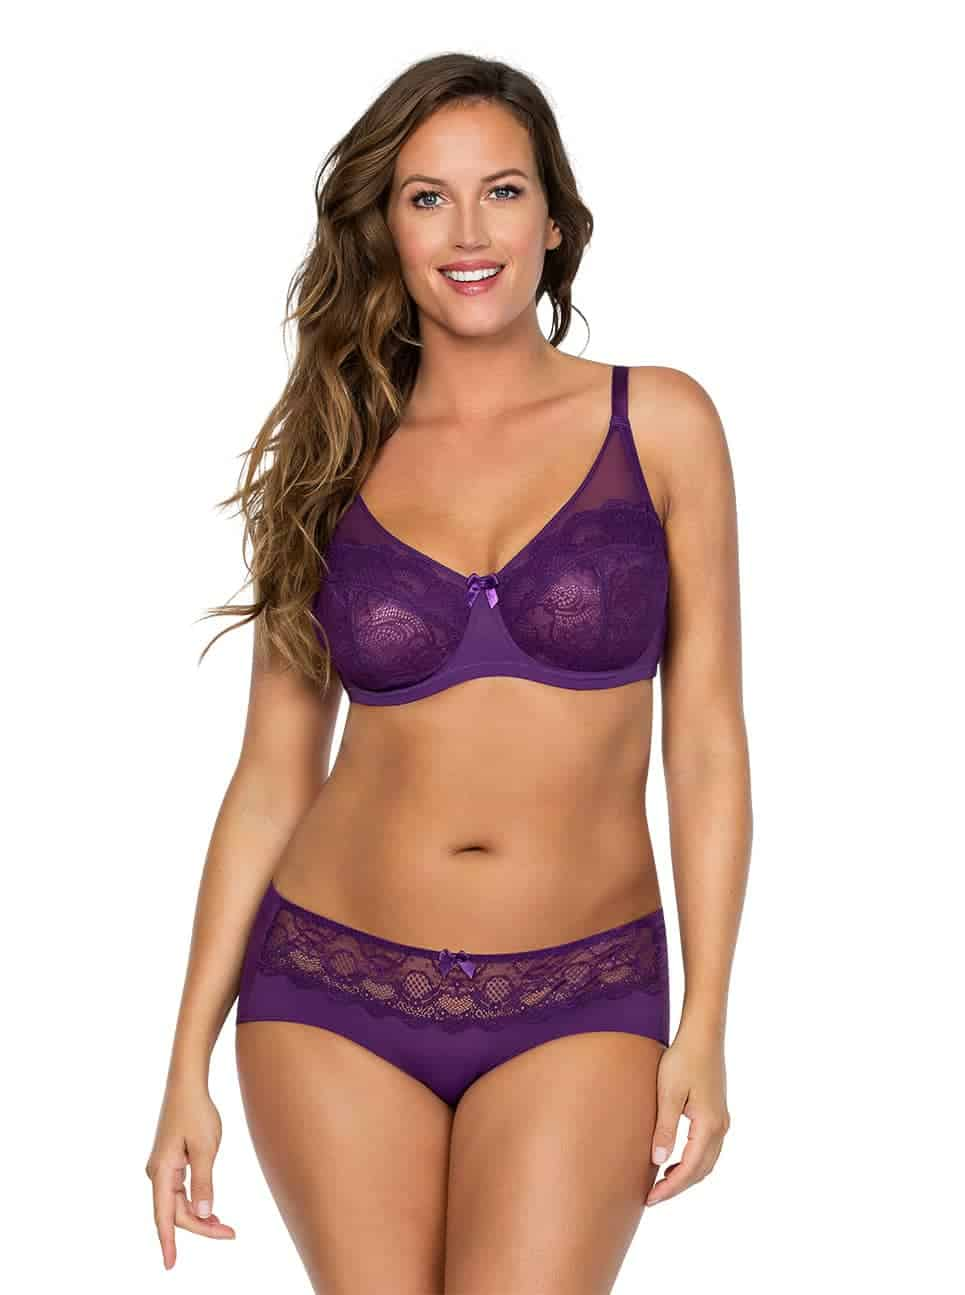 Carole WireBra3102 Hipster3105 Imperial Purple Front copy 2 - Carole Wire Bra - Imperial Purple - 3102